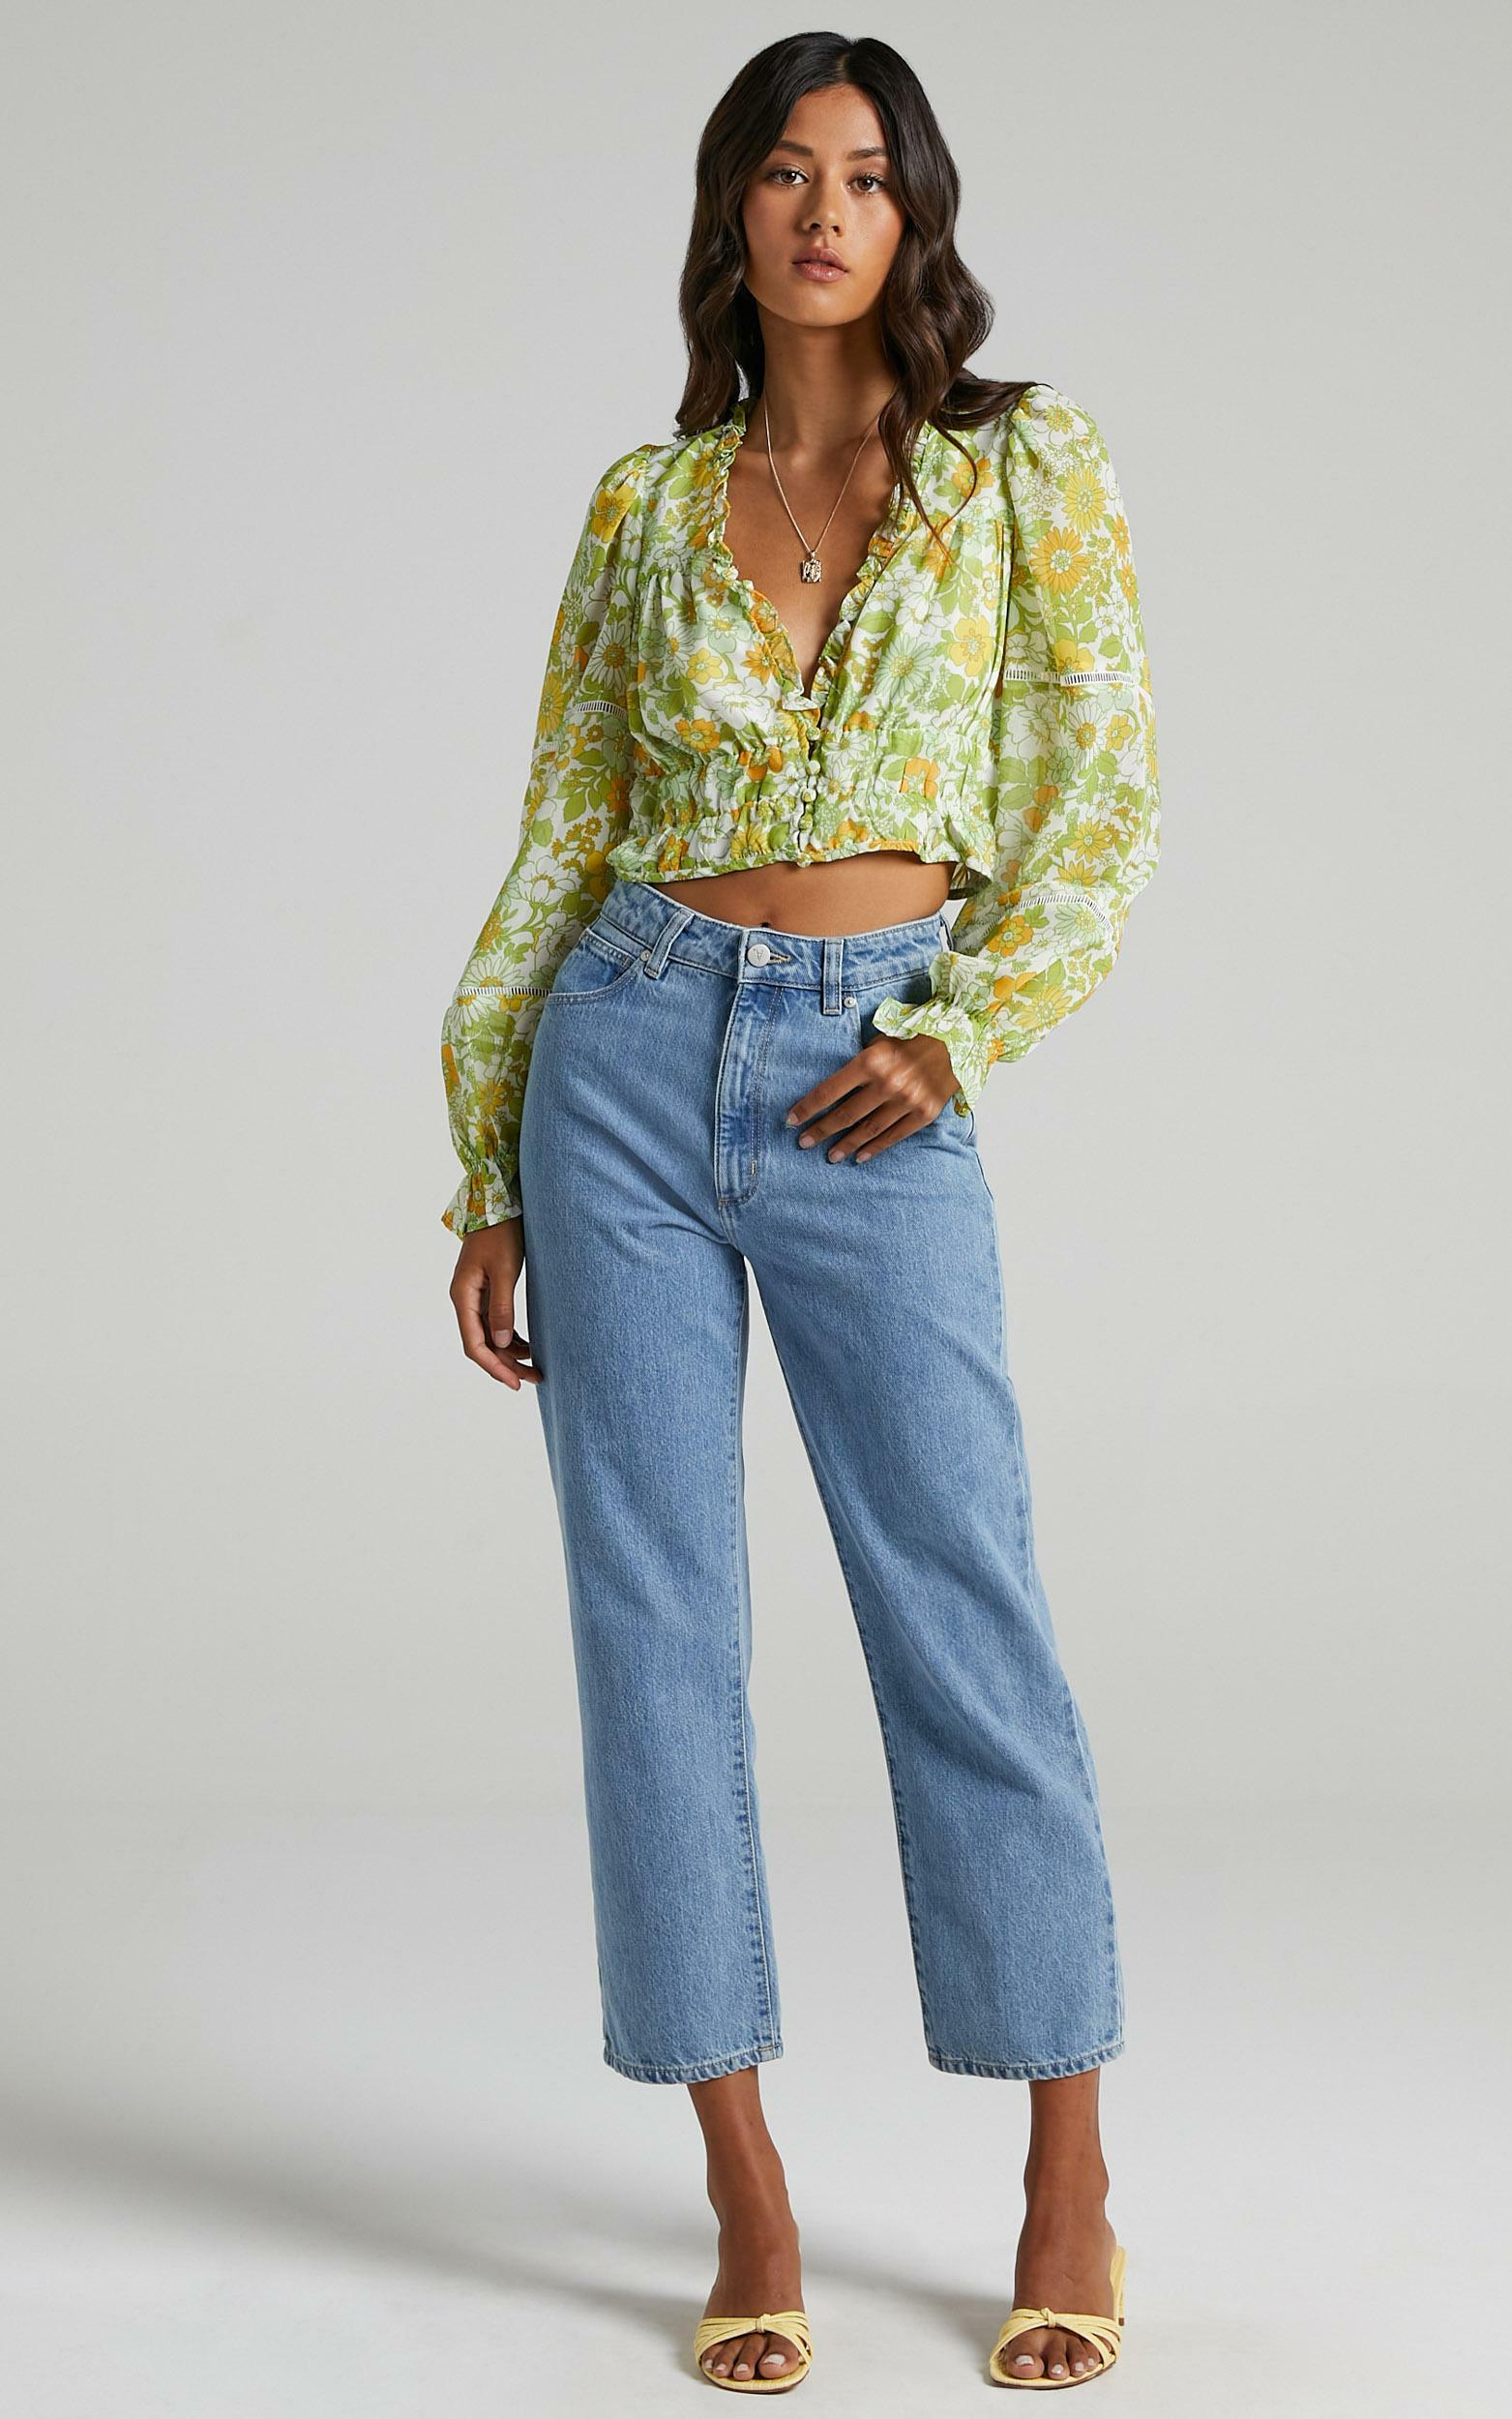 Eze Top in Harmony Floral Chiffon - 06, MLT1, hi-res image number null